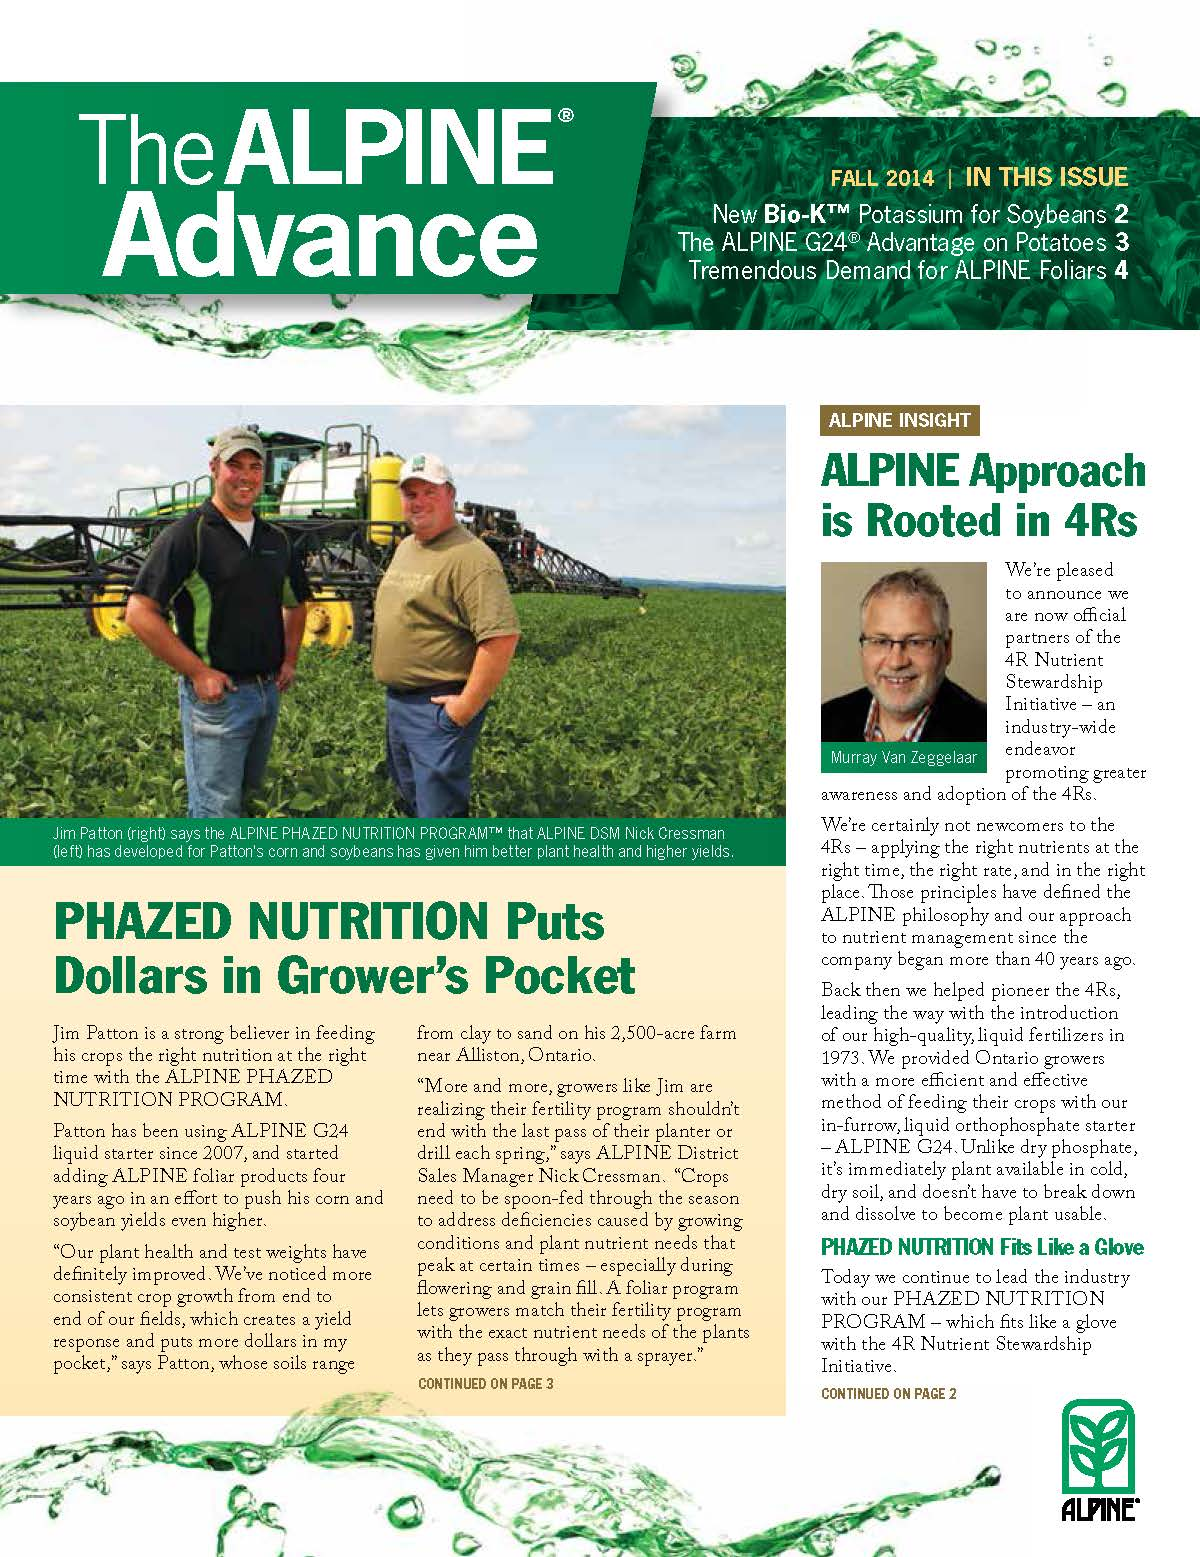 The Alpine Advance Fall 2014